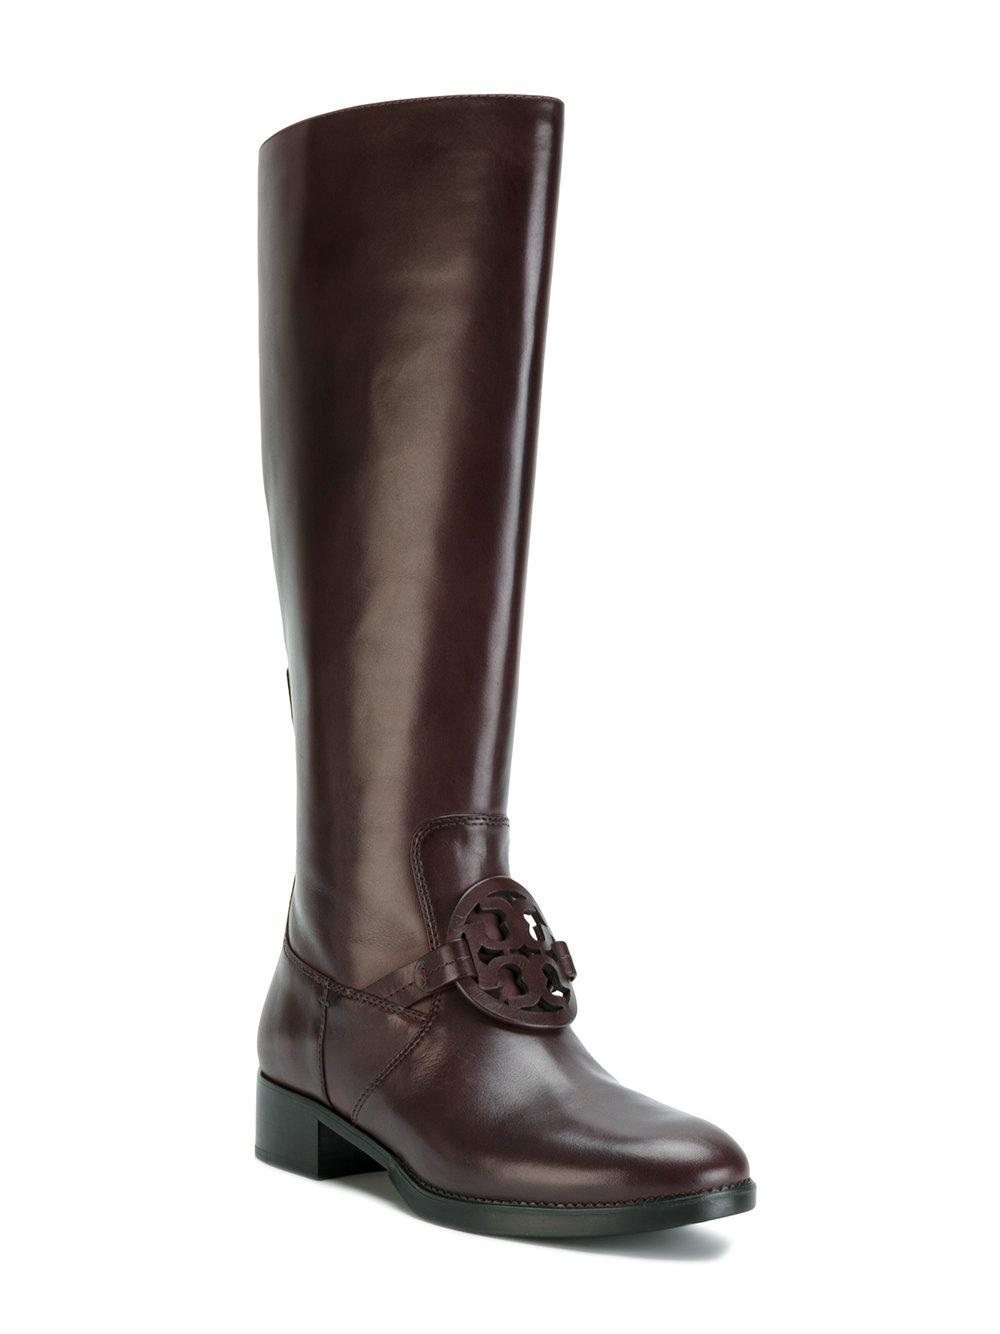 afed4c850f2c Tory Burch Burn Burn Burn Chocolate Miller Pull-on Leather Boots Booties Size  US 8 Regular (M